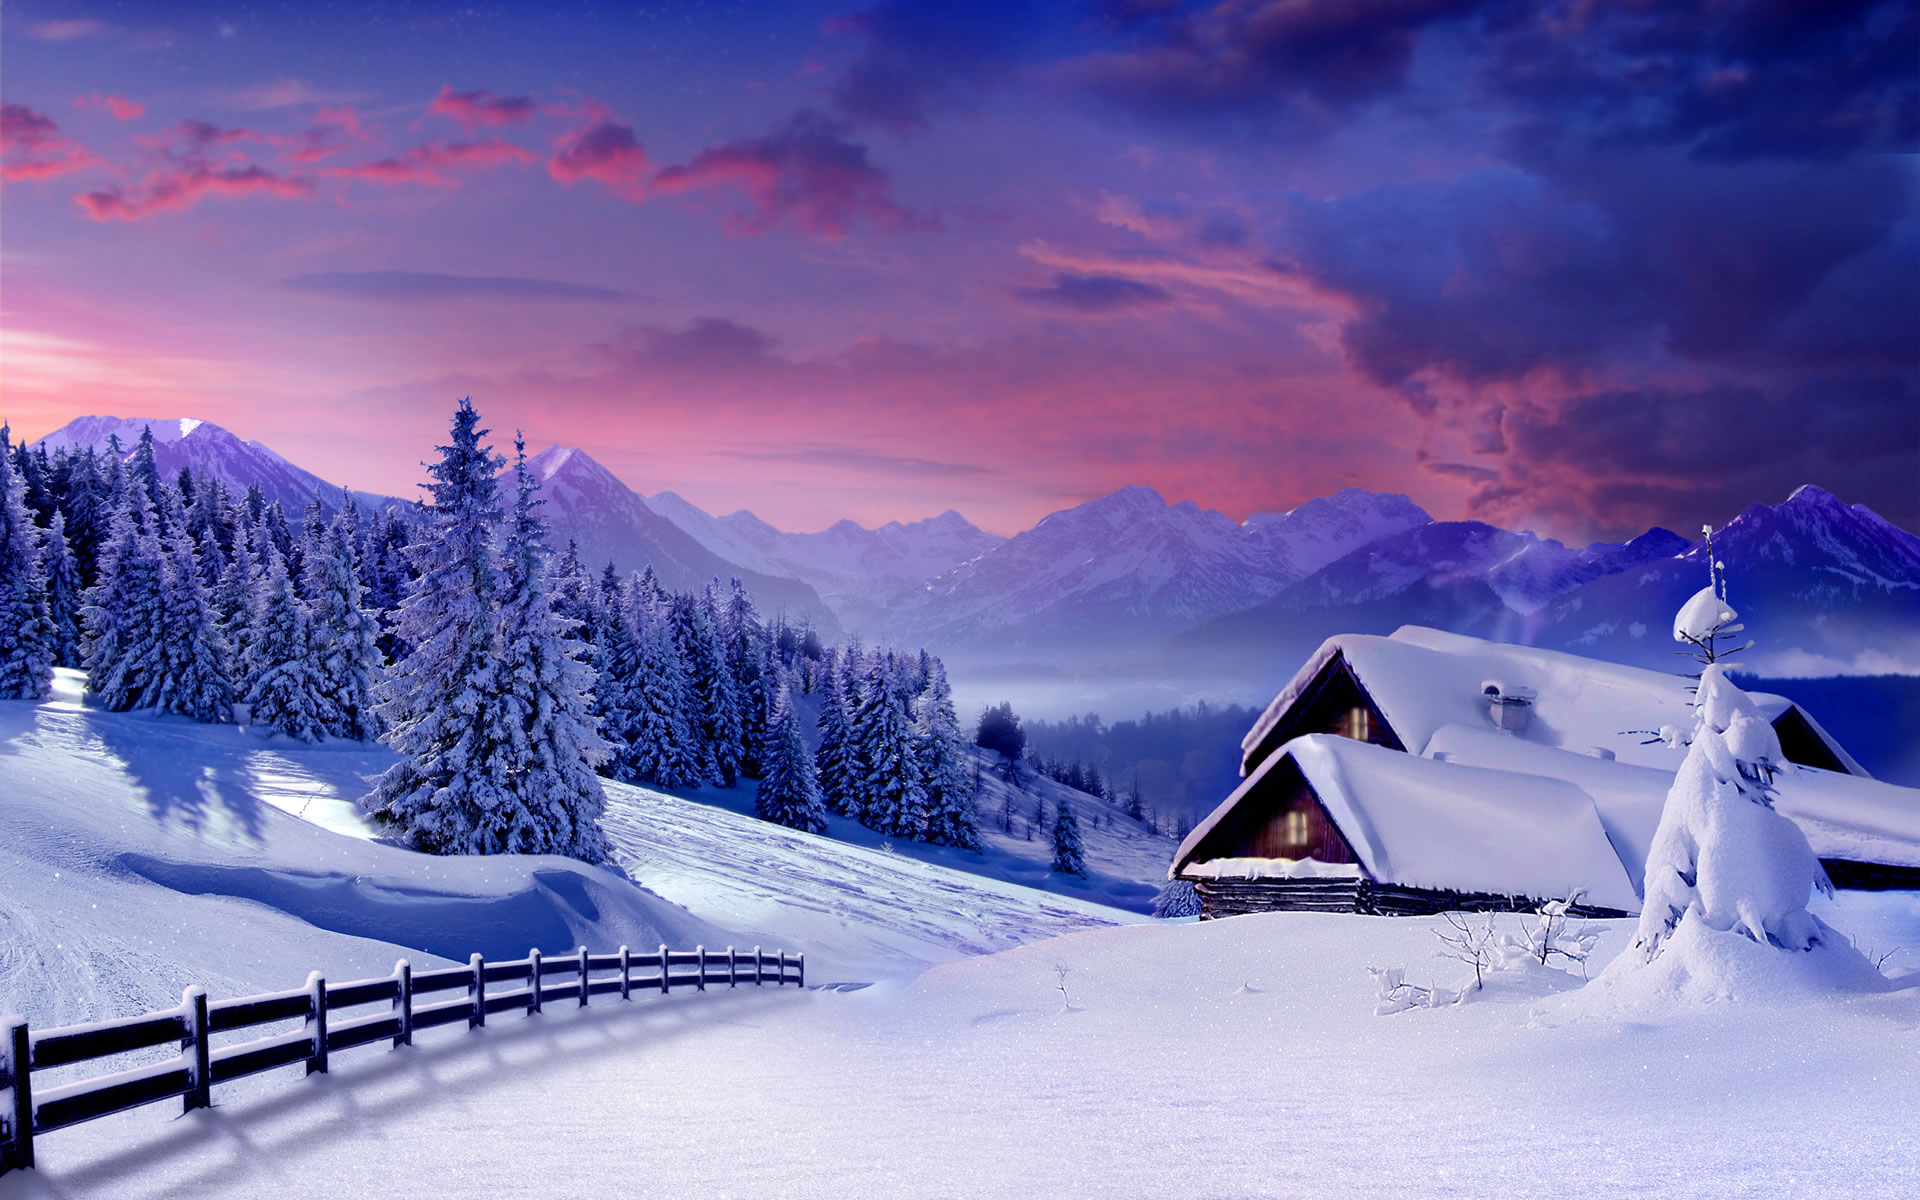 Winter Pictures Wallpaper